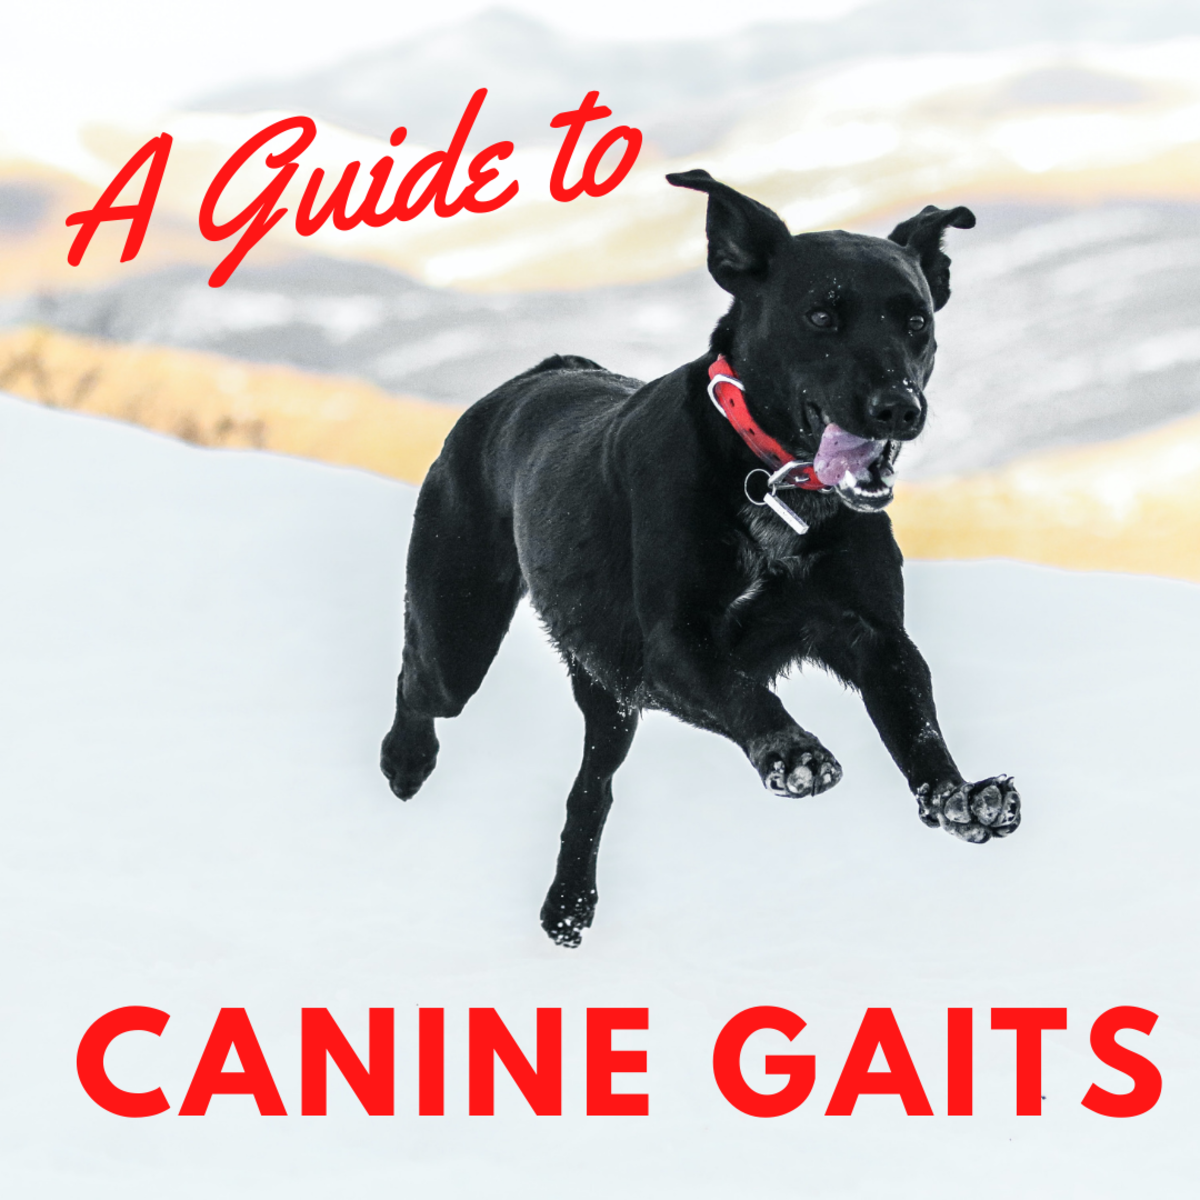 Learn all about how dogs walk, amble, gallop and more.